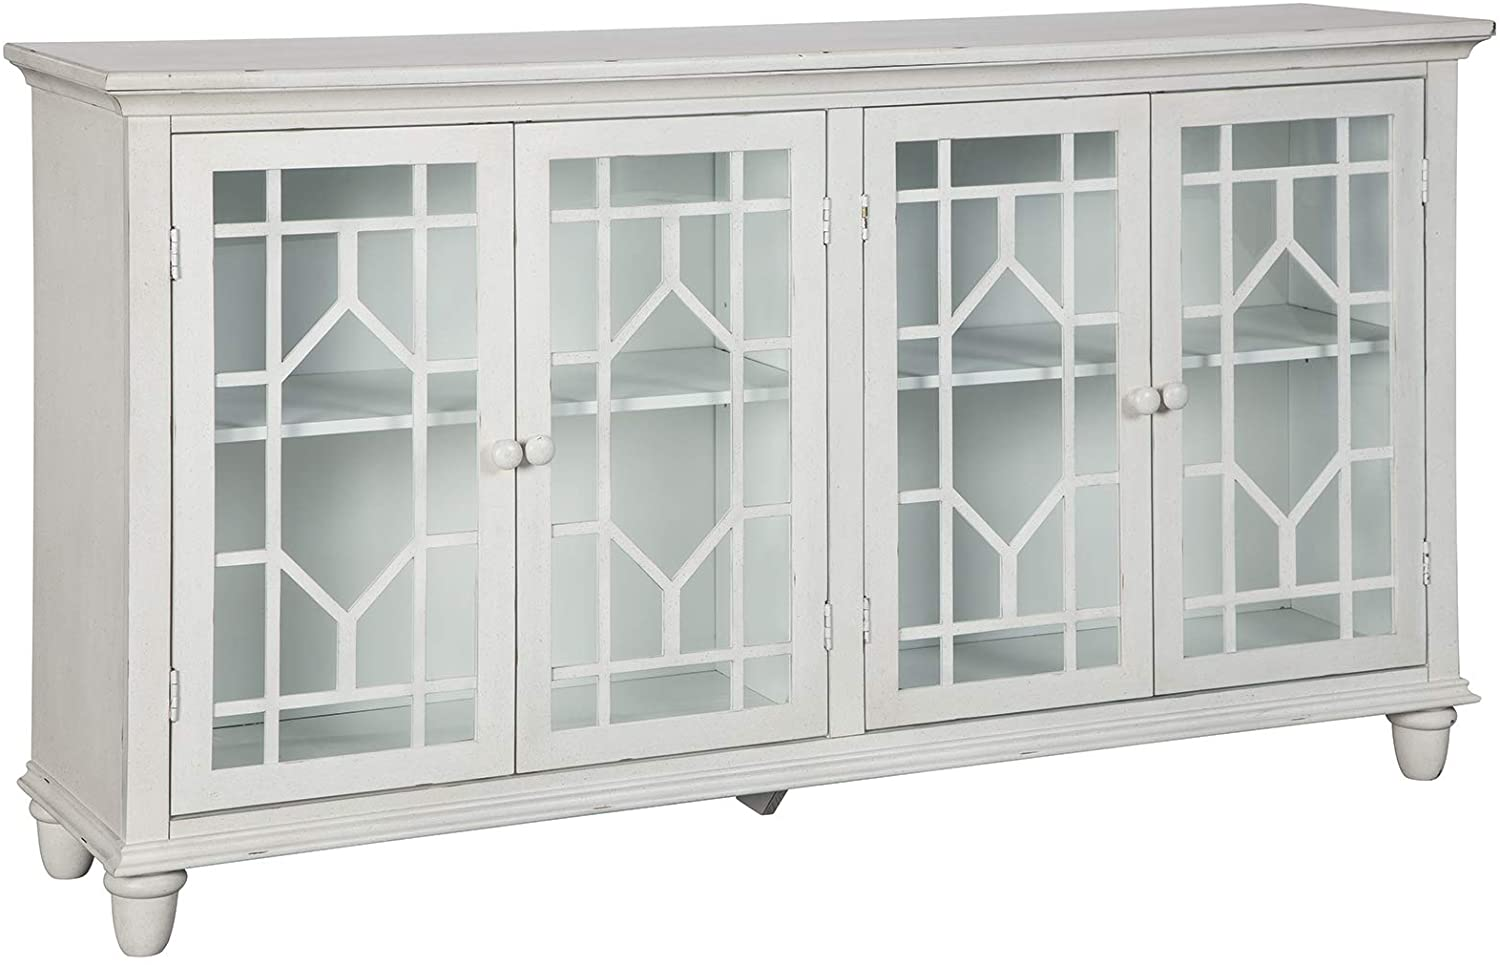 Signature Design by Ashley - Dellenbury Accent Cabinet - Vintage Casual - White